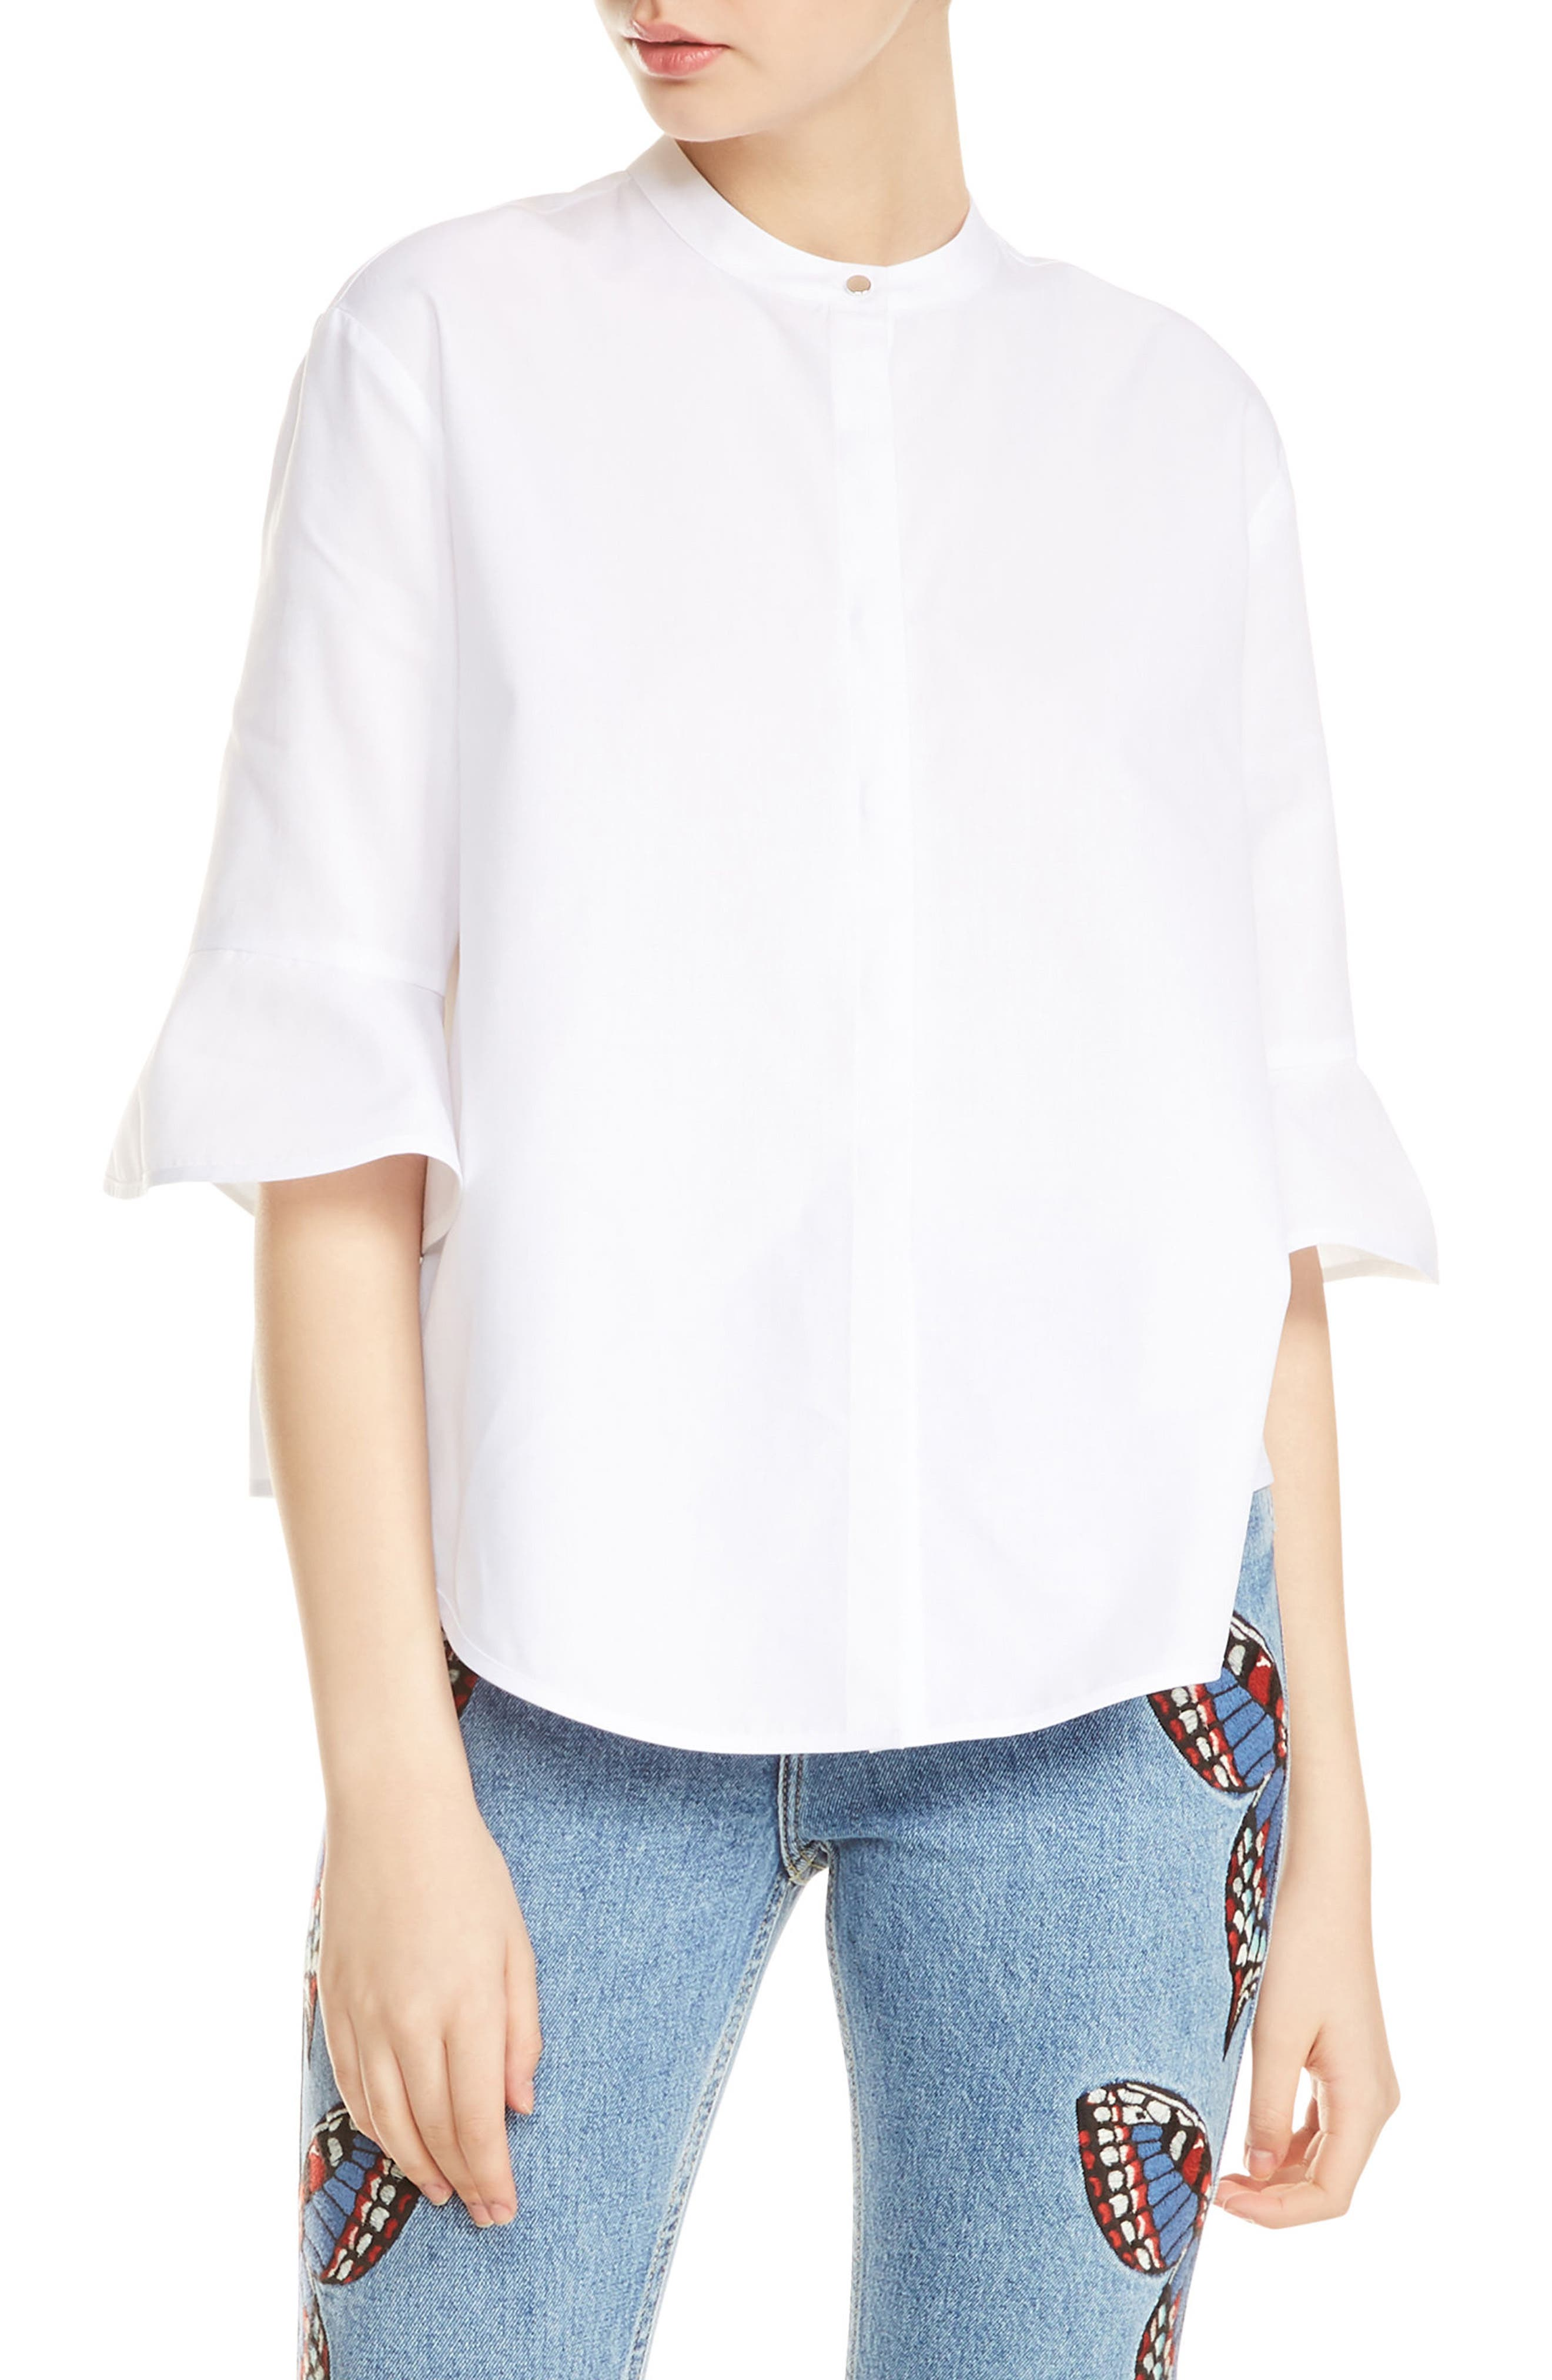 Charlyz Three Quarter Ruffle Sleeve Cotton Blouse,                             Main thumbnail 1, color,                             Blanc